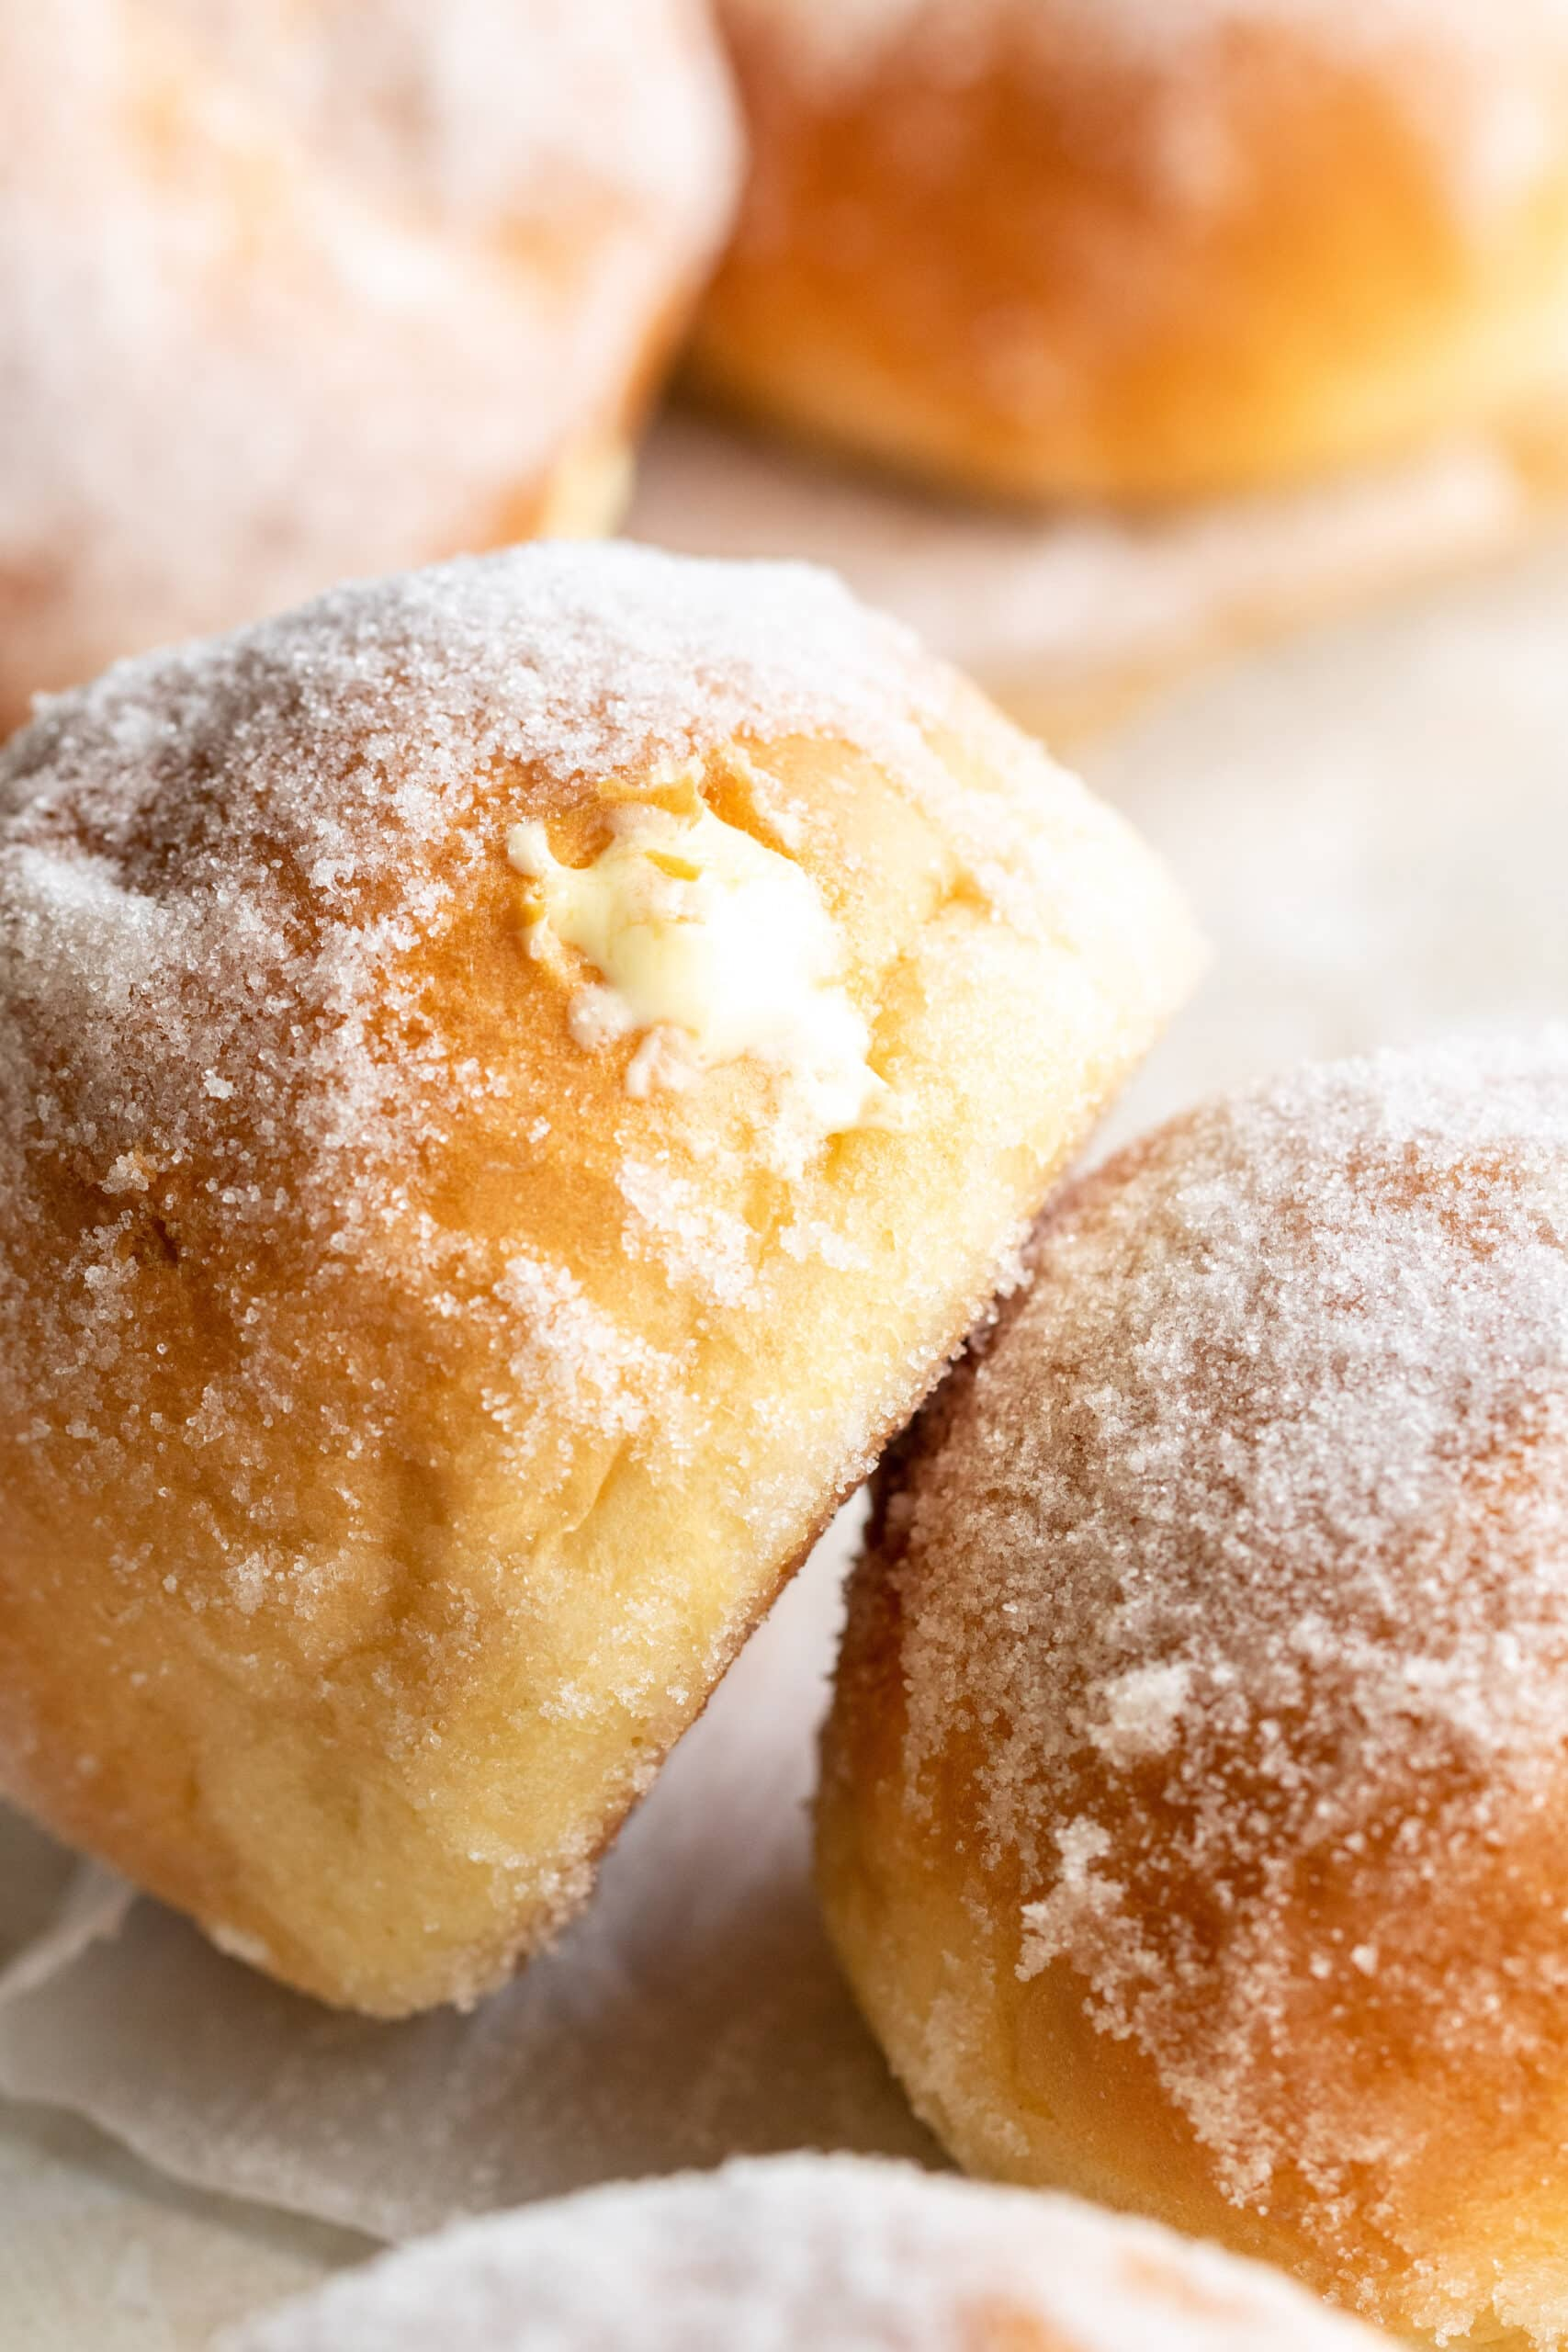 up close image of two vanillekrapfen with the hole where the vanilla cream was piped into it, showing.